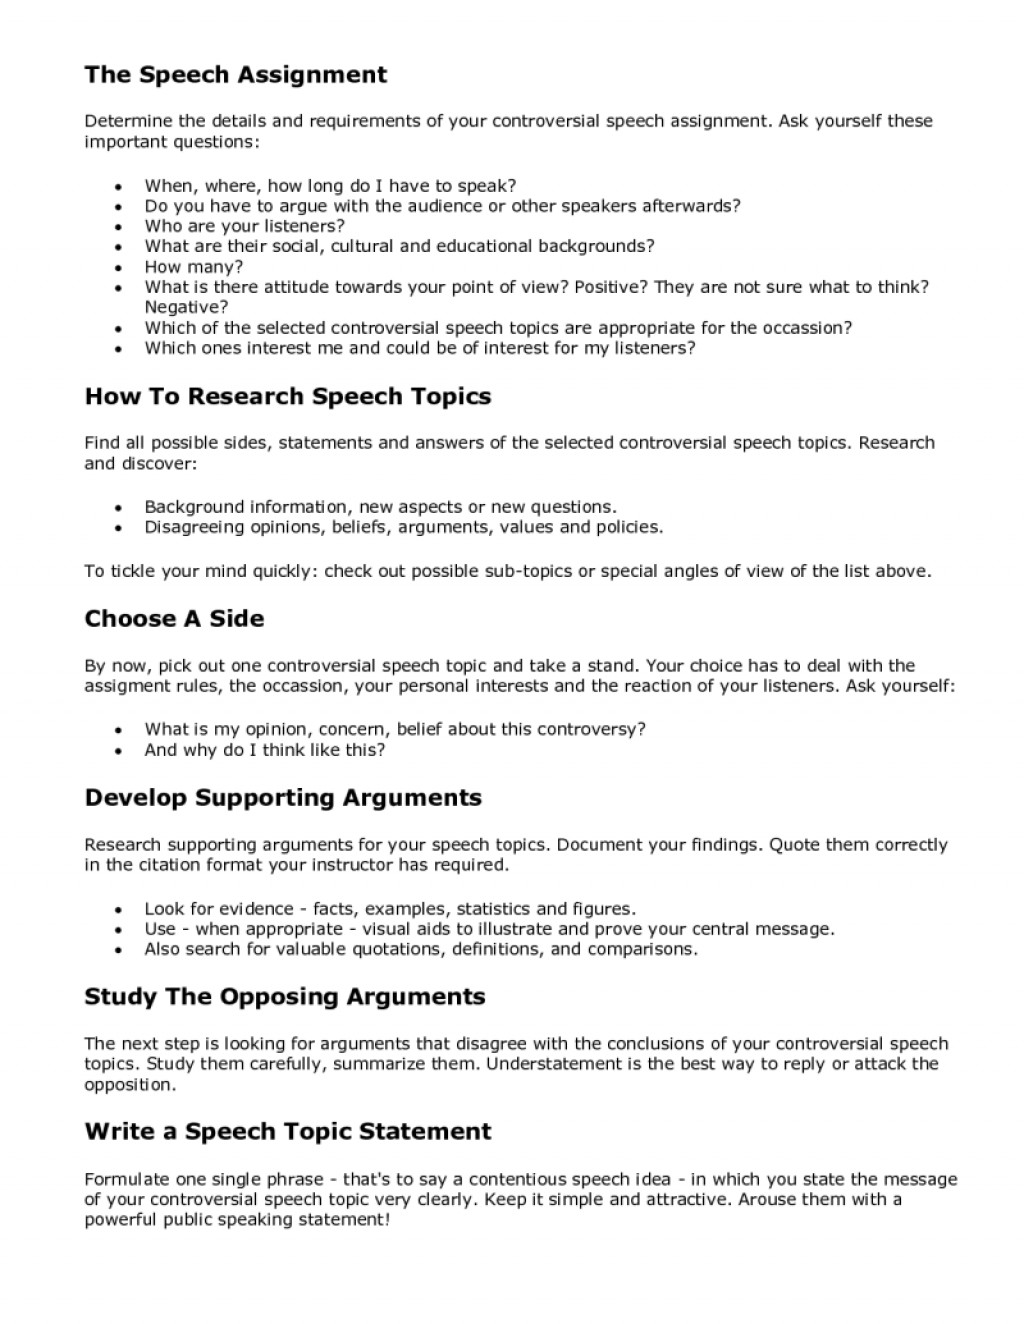 003 Essay Example Funny Argumentative Topics Persuasive Middle School Infoupdate Org Controversial Statements Template 6oz For College Students Hilarious Marvelous Large